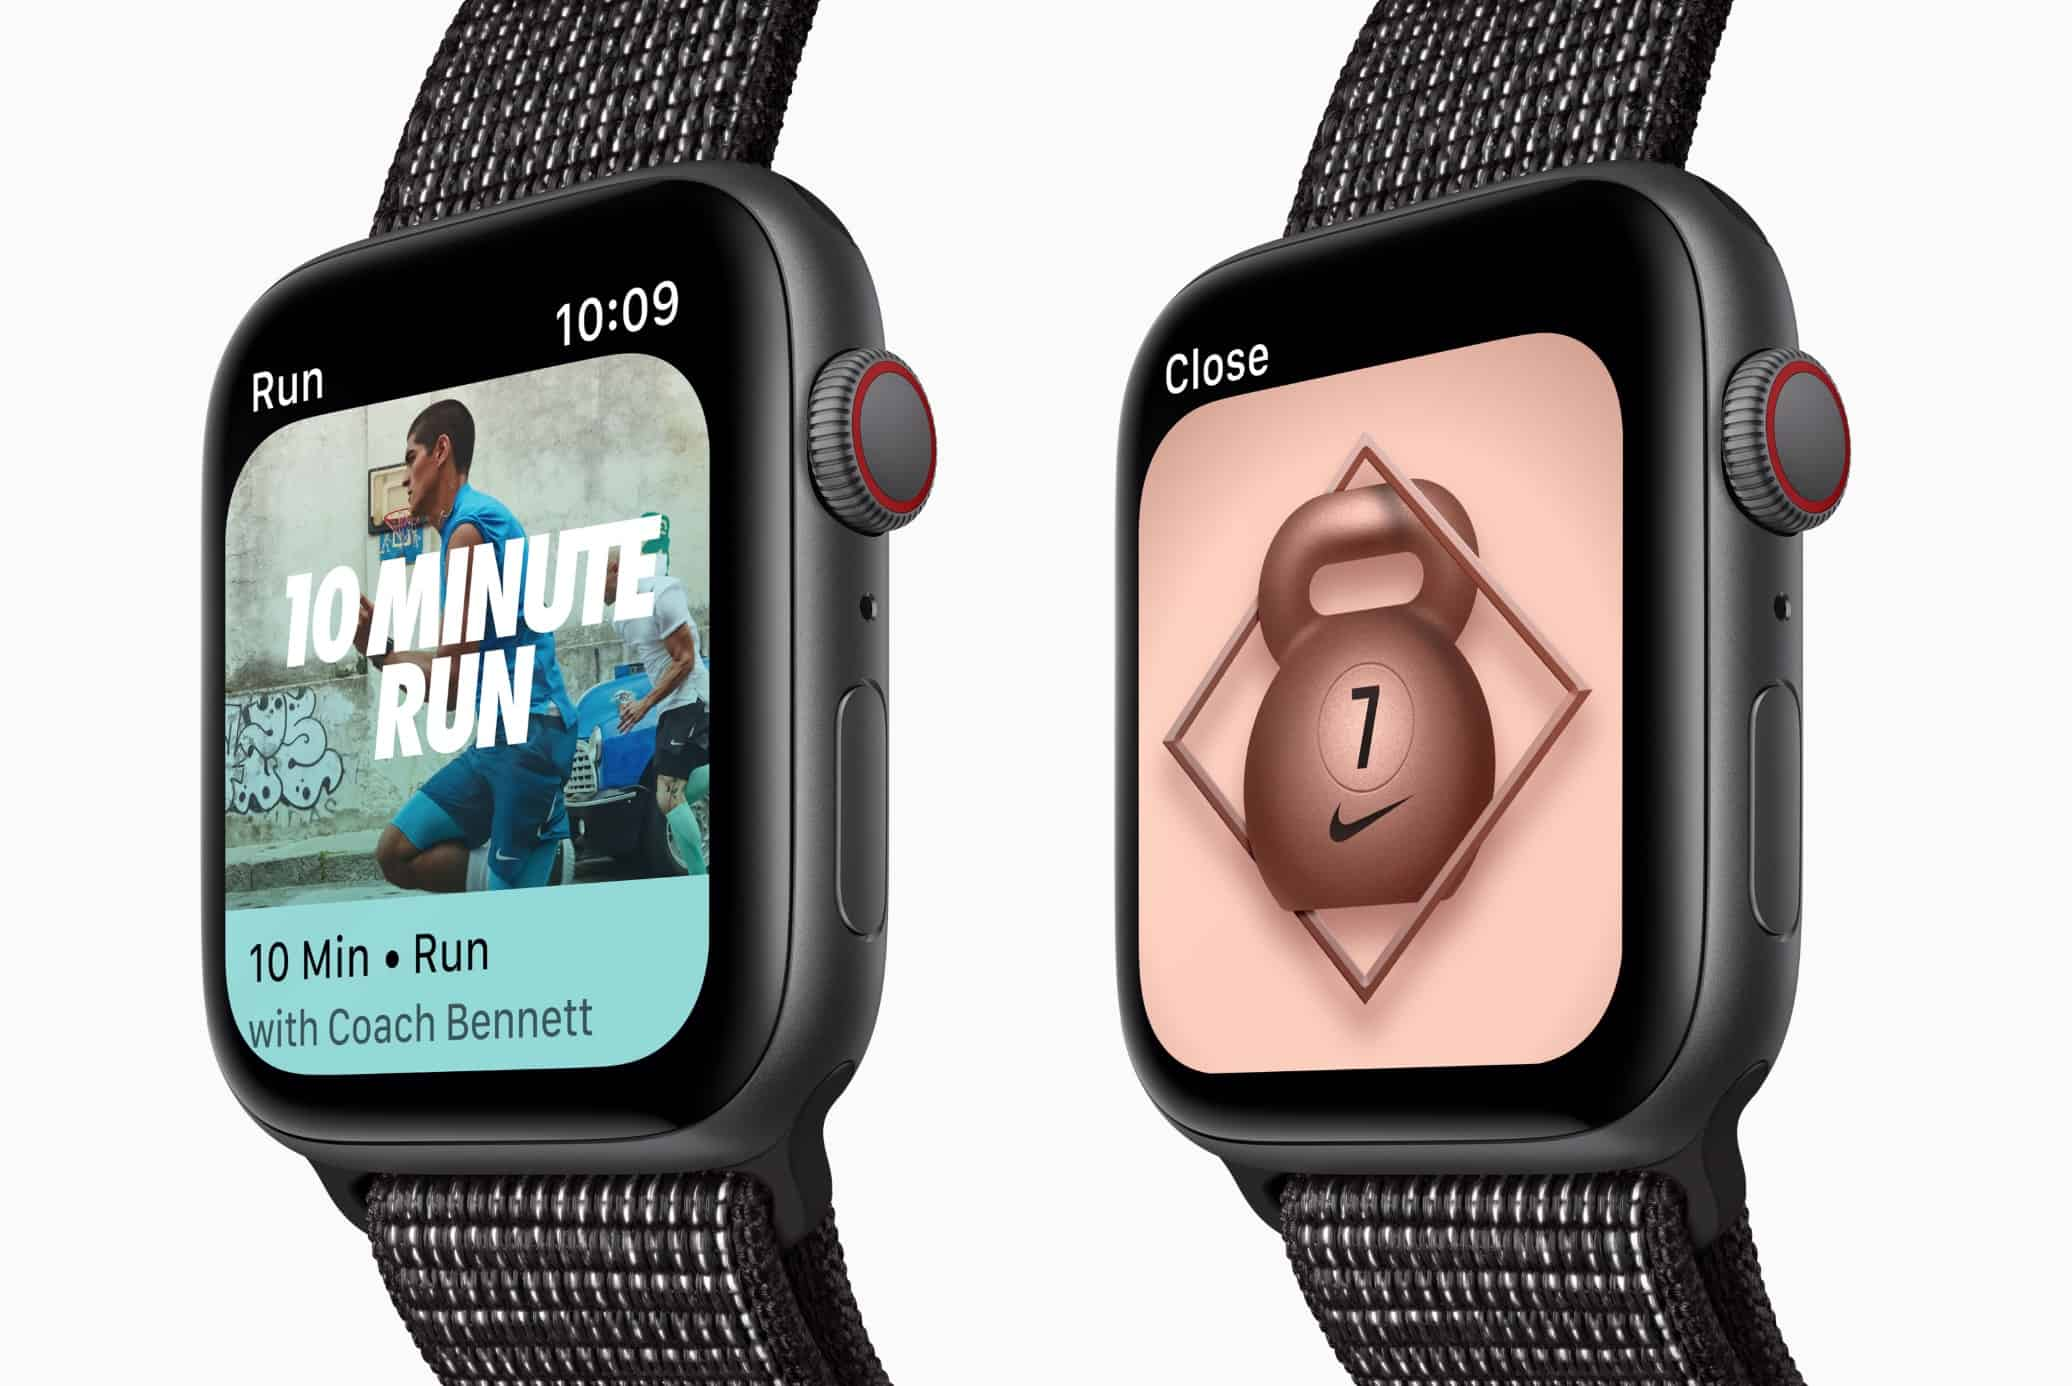 Sicilia atraer Viento fuerte  Apple Watch Series 4 Nike+ model will be slightly delayed | Cult of Mac